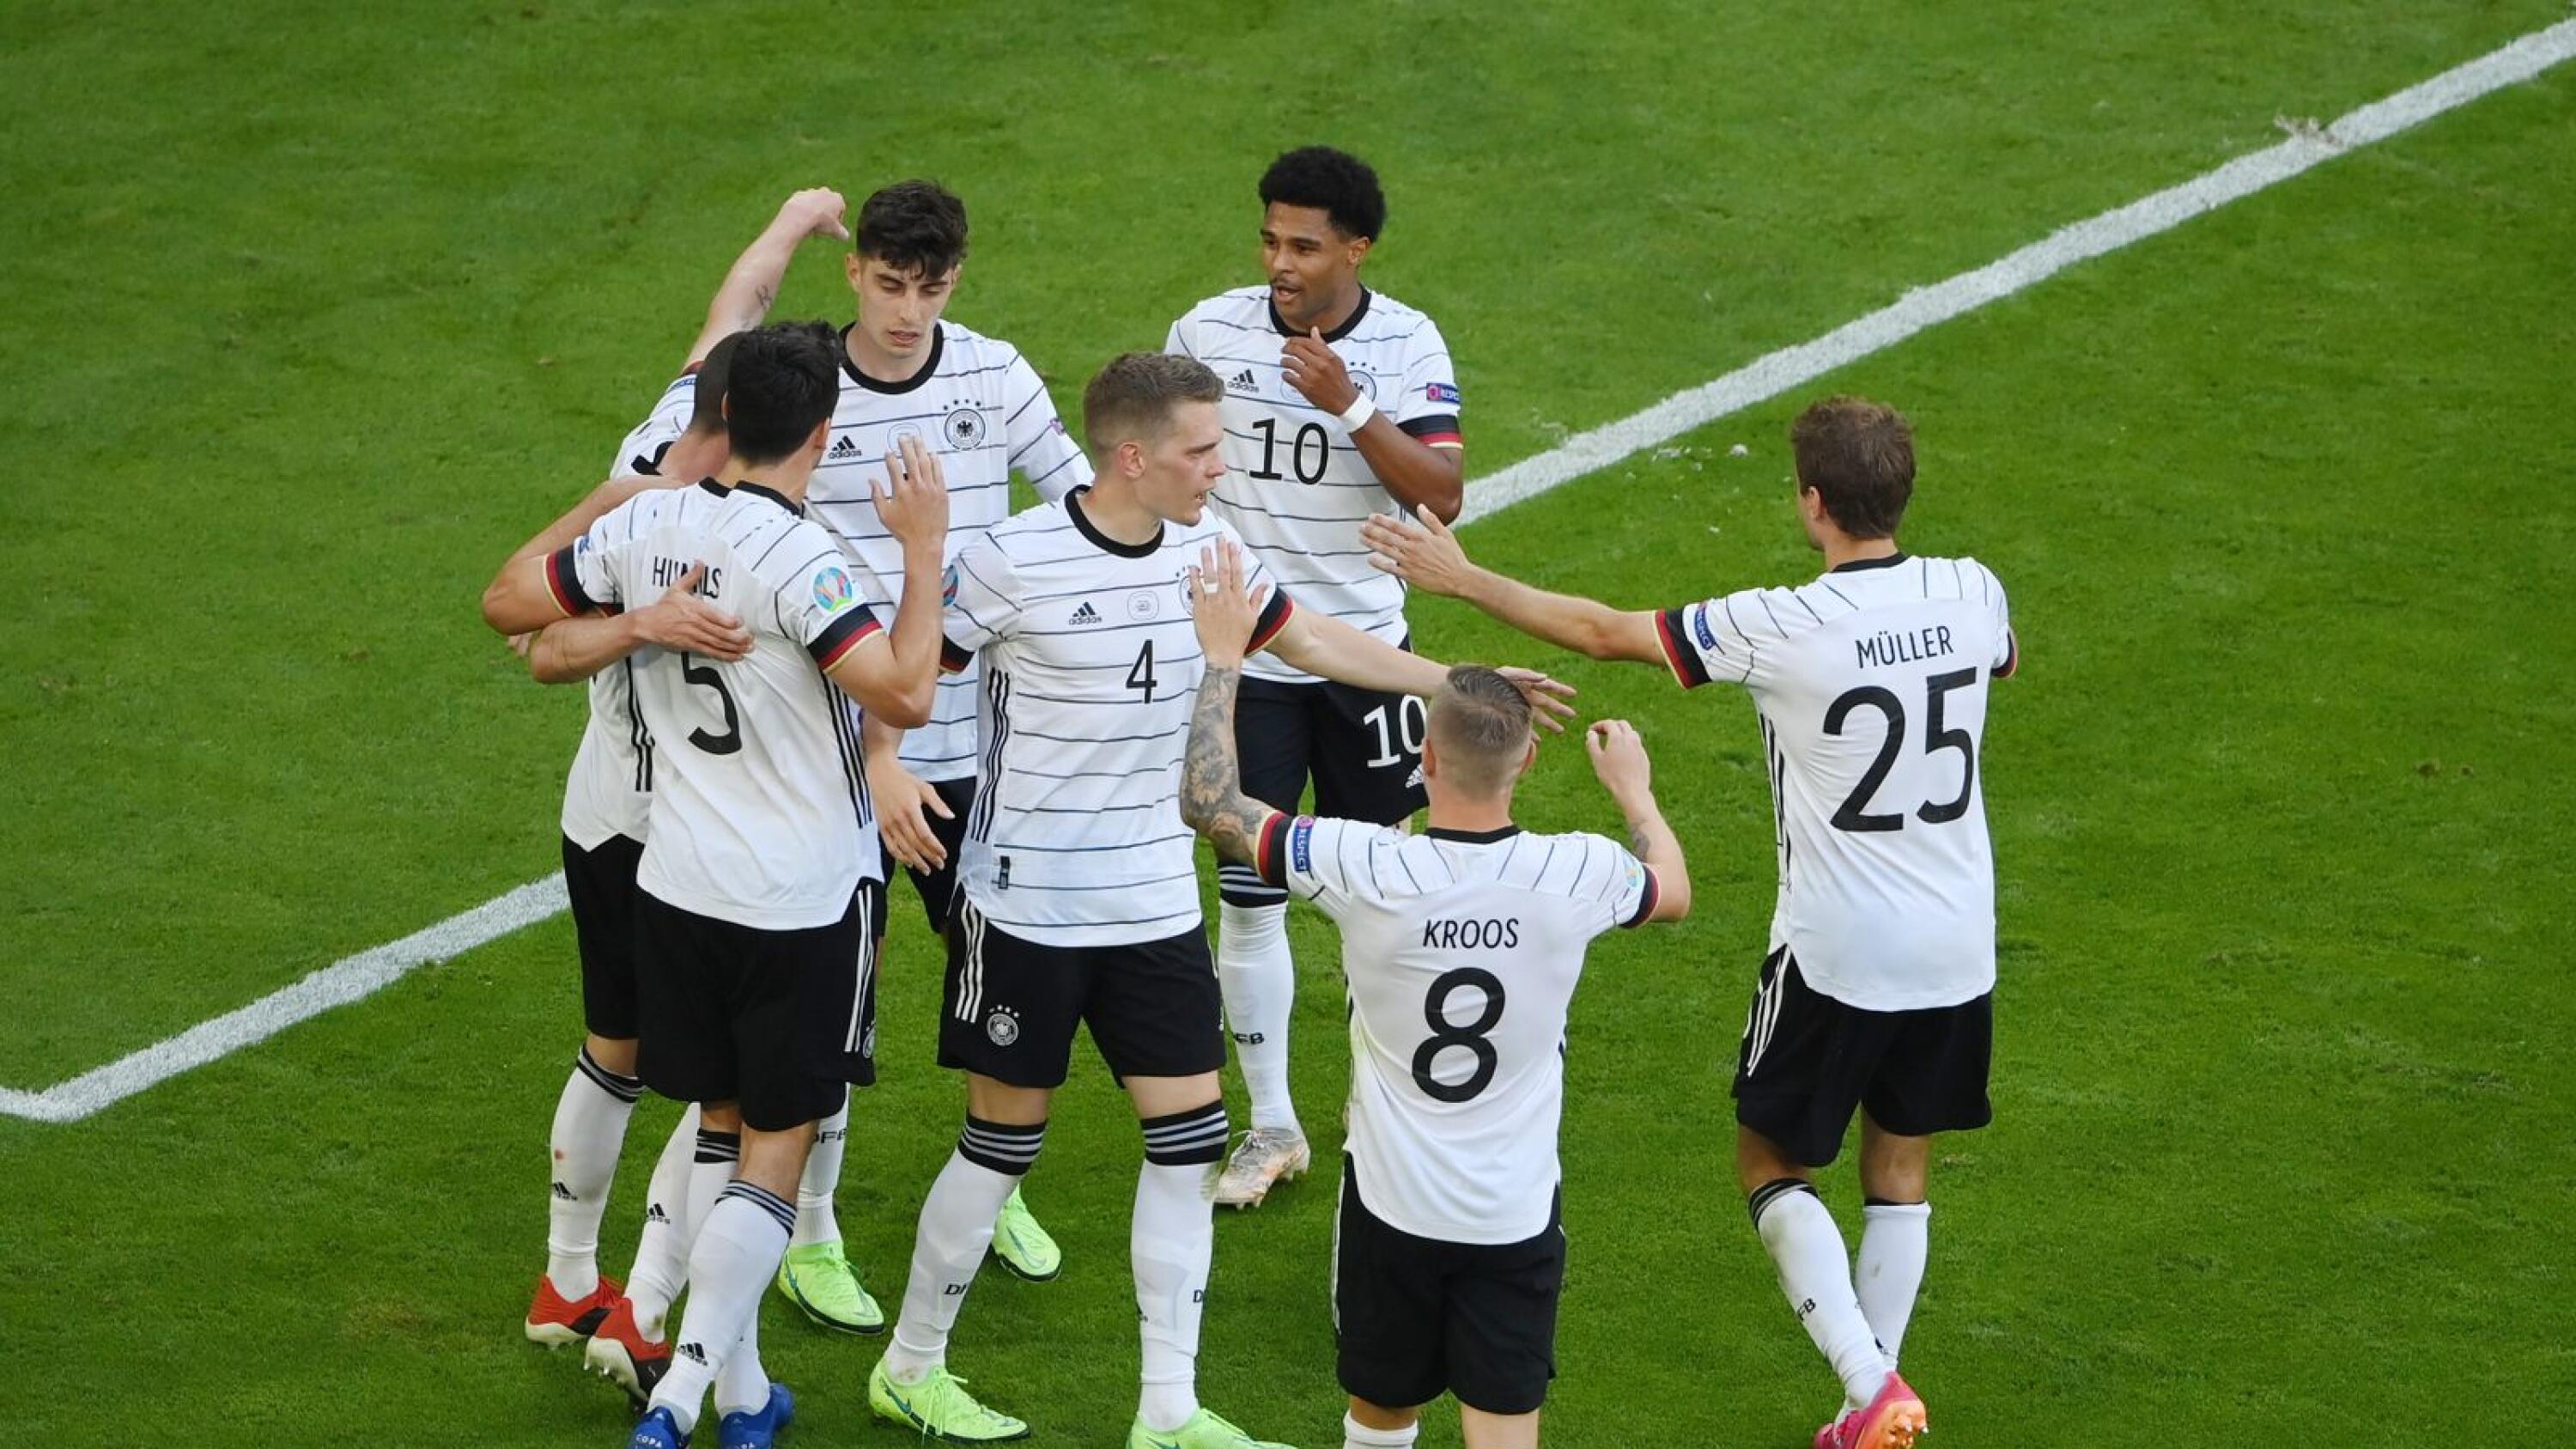 Germany's Kai Havertz celebrates with teammates after scoring their third goal in their Euro 2020 game against Portugal at the Allianz Arena in Munich on Saturday